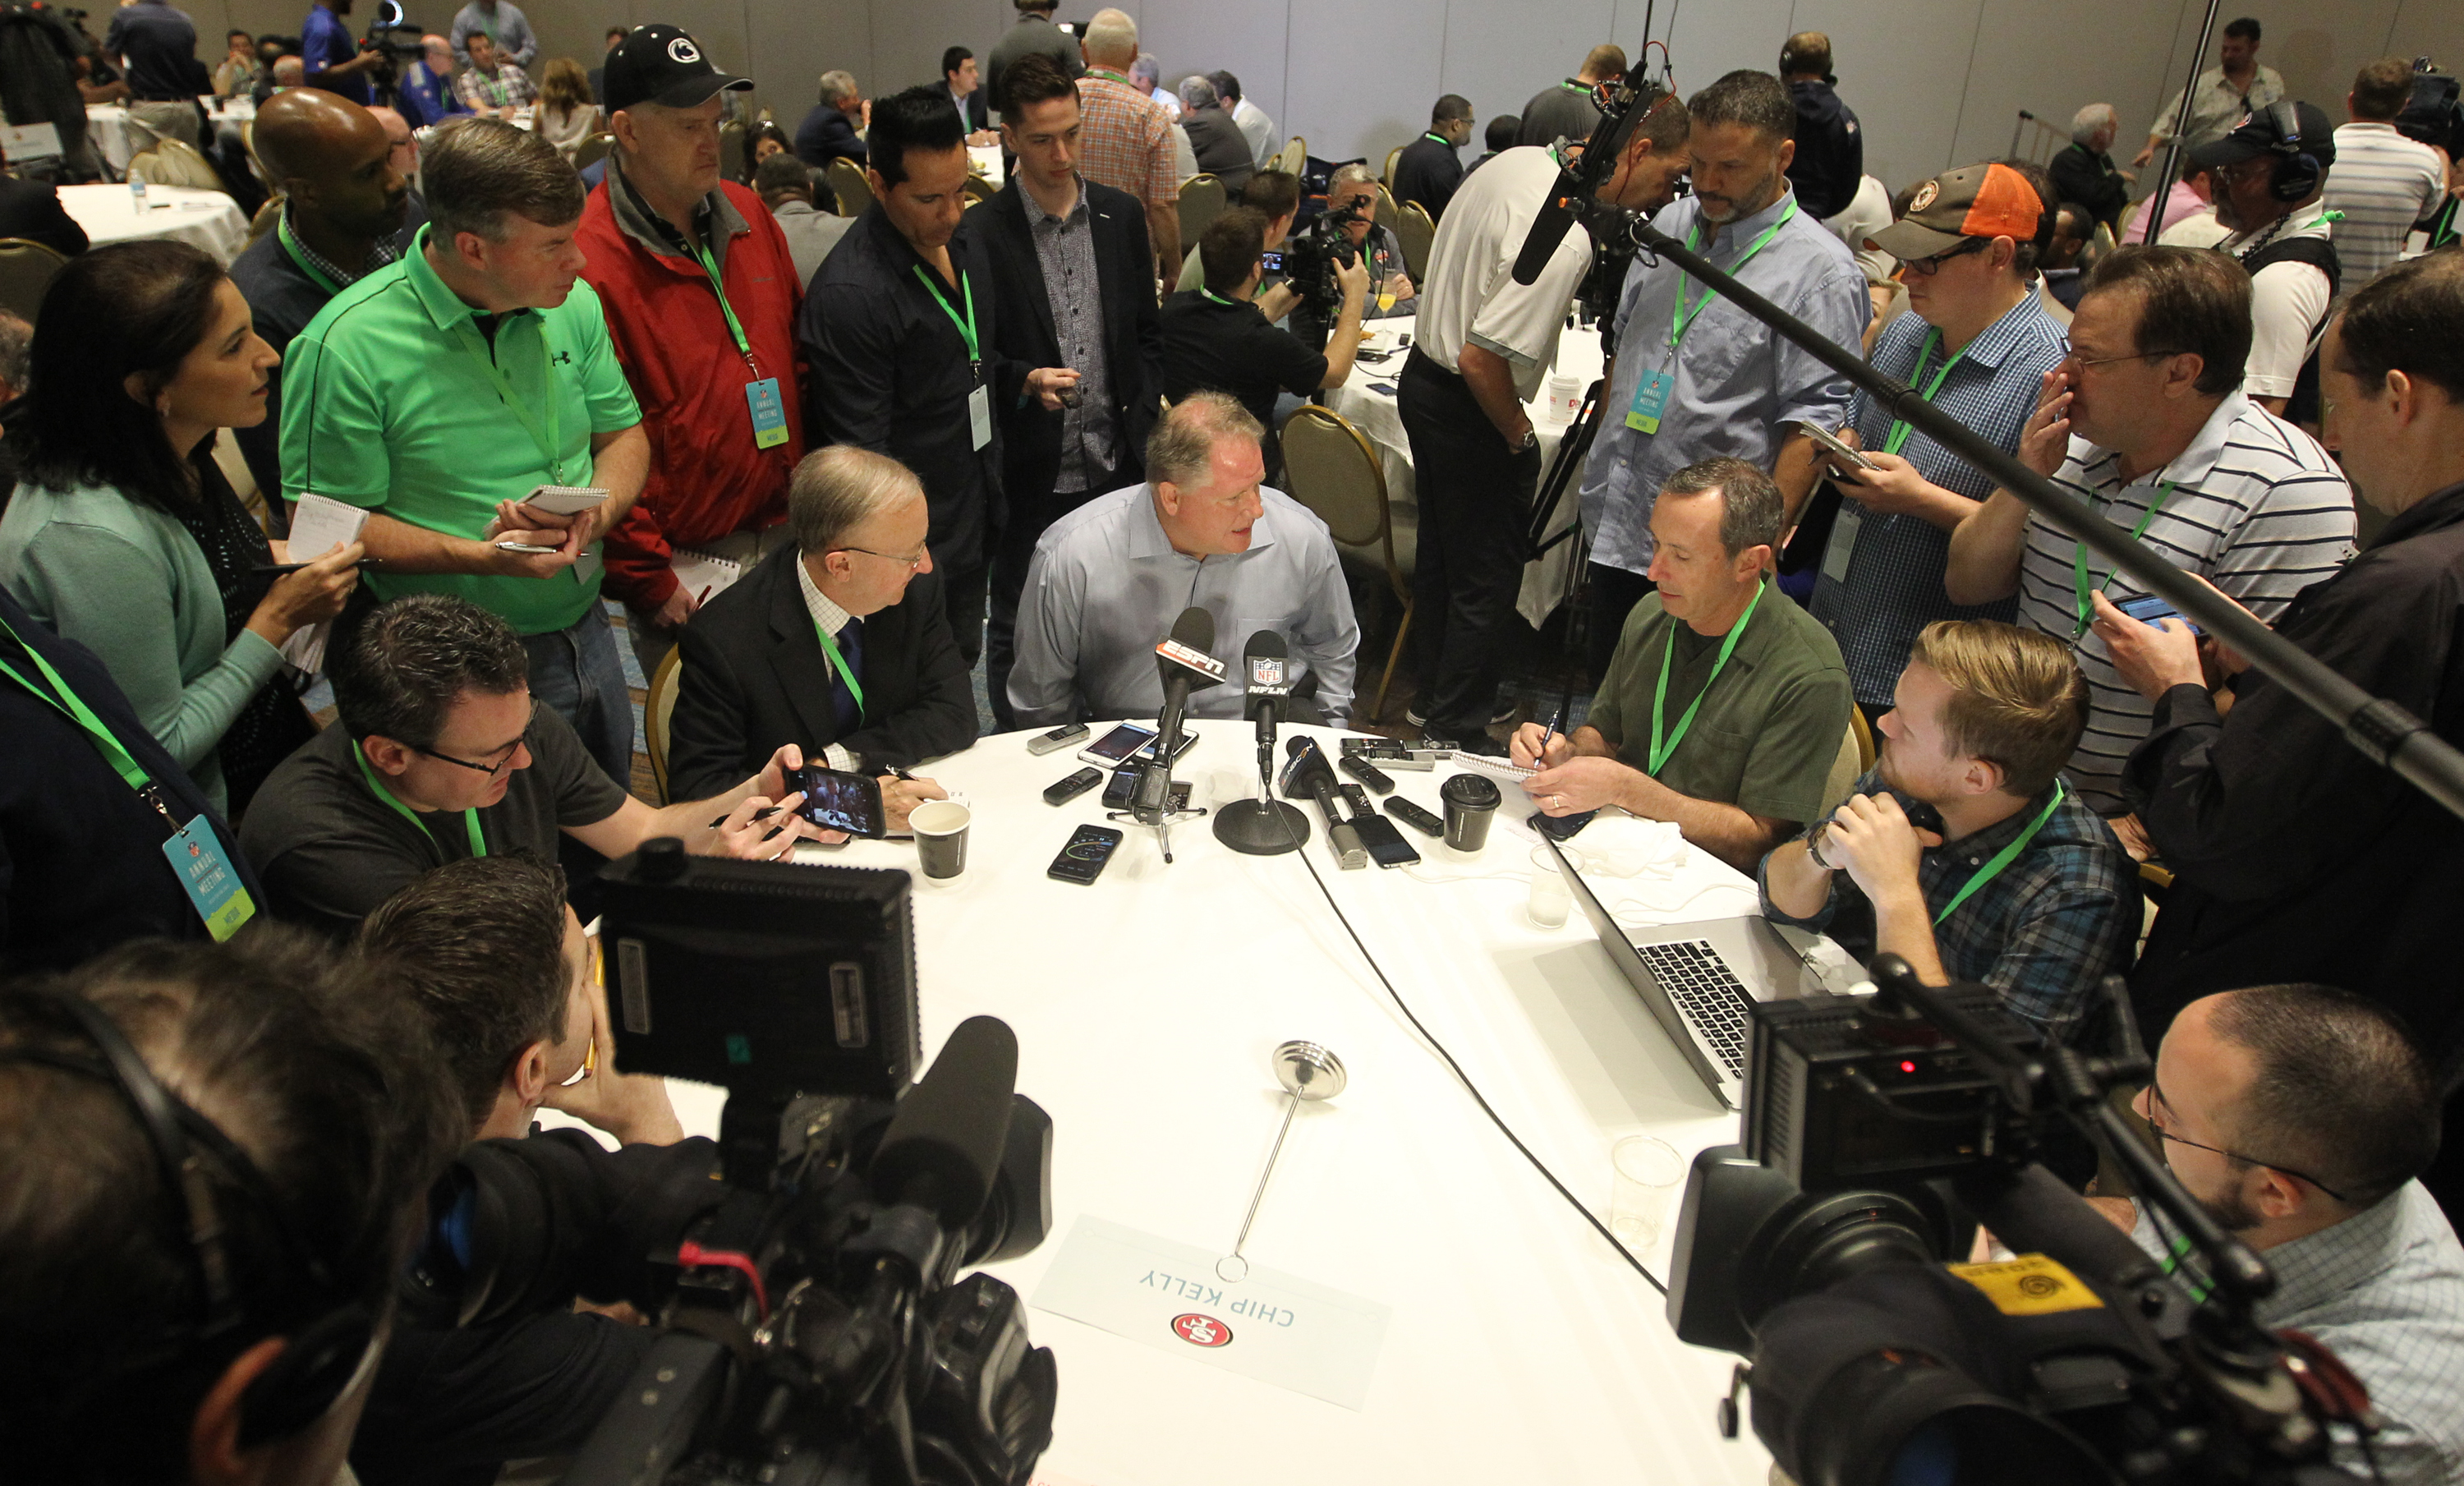 San Francisco 49ers head coach Chip Kelly, center, talks to a member of the media at the NFL owners meeting in Boca Raton, Fla., Wednesday, March 23, 2016. (AP Photo/Luis M. Alvarez)